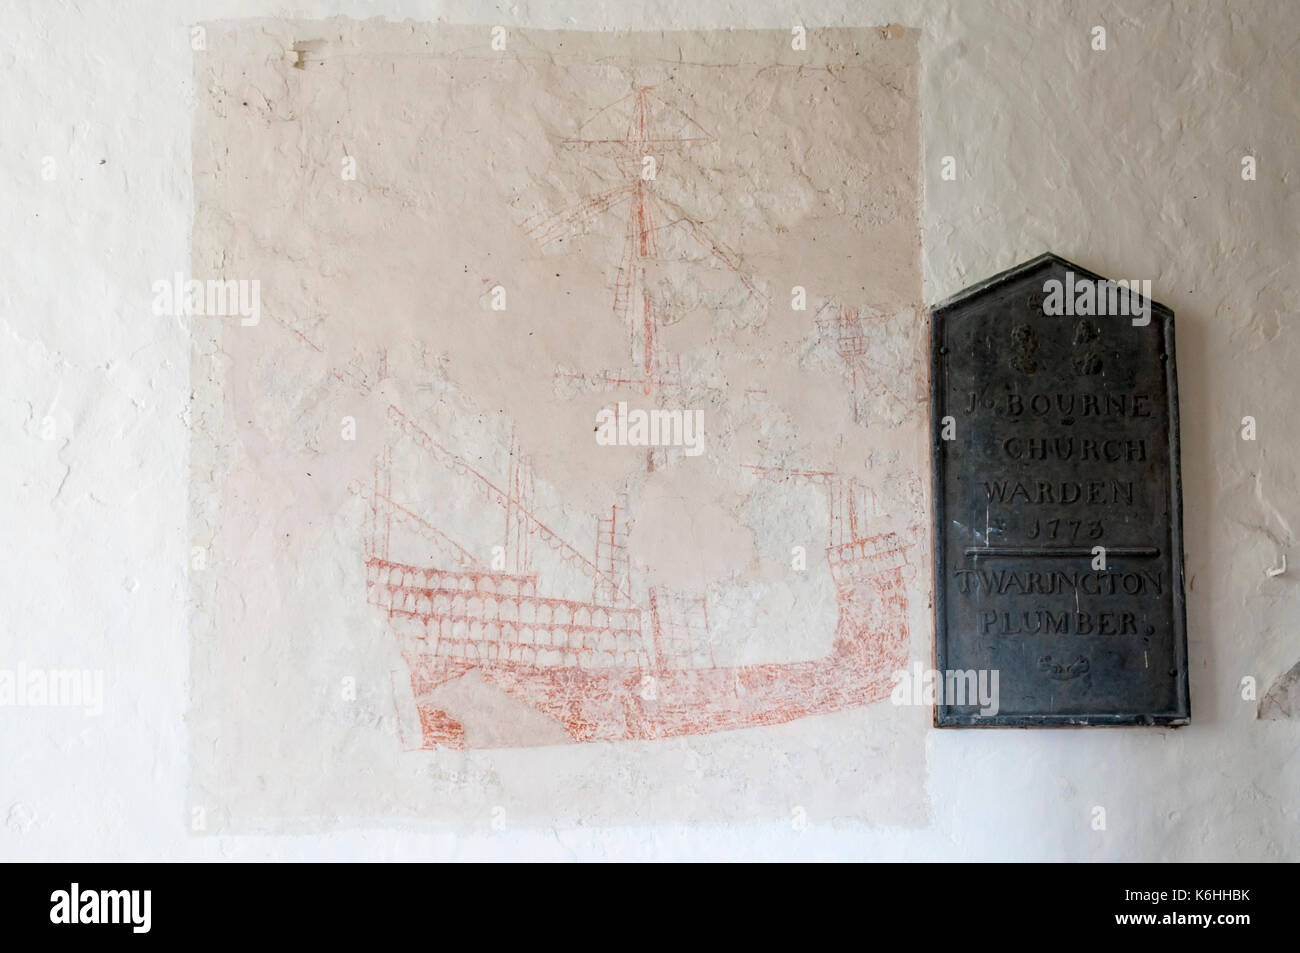 Fifteenth century painting of sailing ship on wall of Snargate church, Romney Marsh, Kent - Stock Image